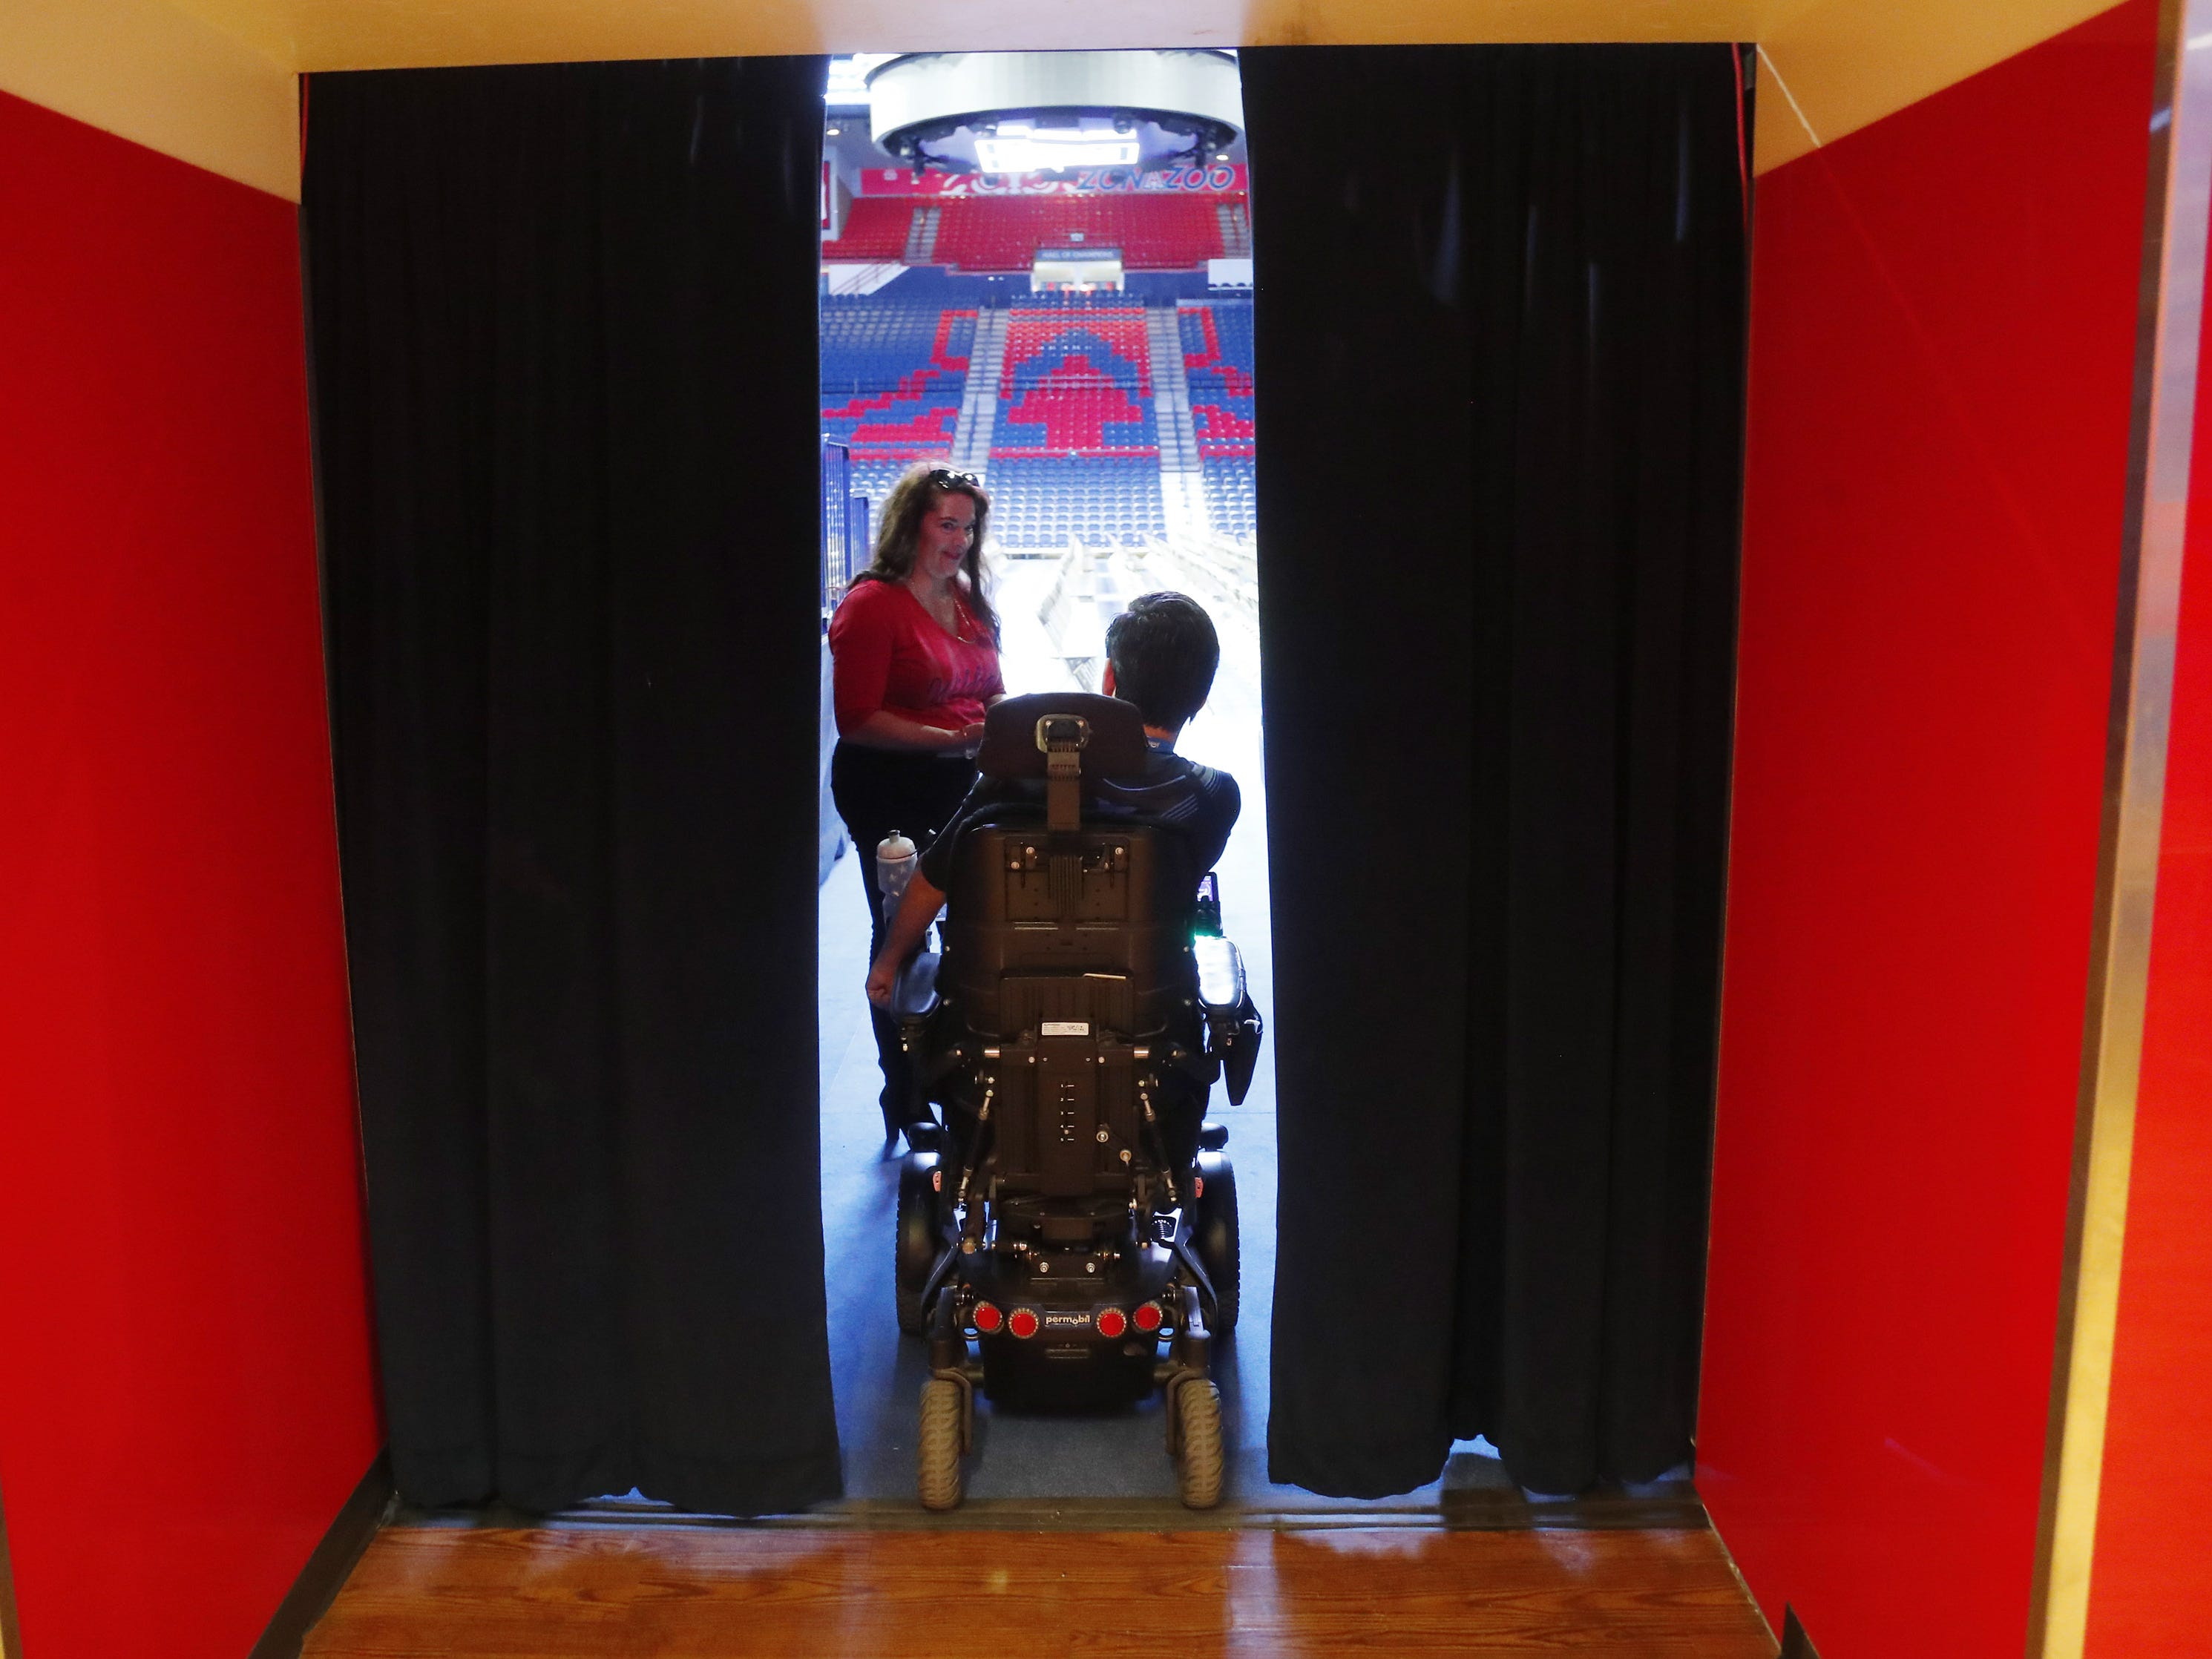 University of Arizona graduate Jeffrey Bristol waits in a breezeway with his mom, Hermelinda, at McKale Center in Tucson, Ariz. on May 8, 2019. He has cerebral palsy and is a lifelong wheelchair user but has learned to walk with the help from engineering students who helped construct an exoskeleton. He plans to walk for graduation.